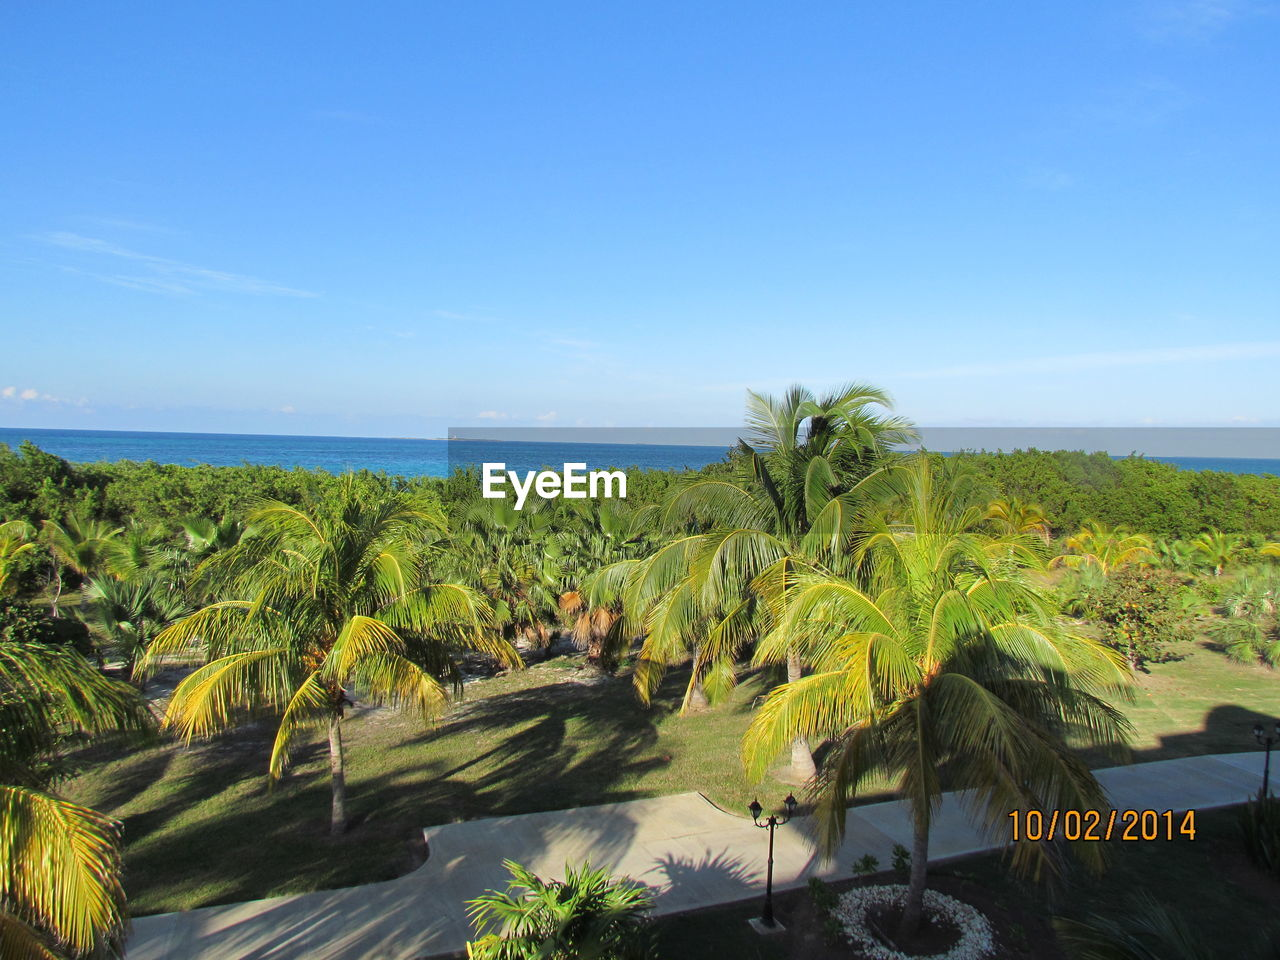 sea, horizon over water, nature, sky, palm tree, scenics, beauty in nature, blue, tranquil scene, tranquility, beach, day, no people, outdoors, water, clear sky, landscape, tree